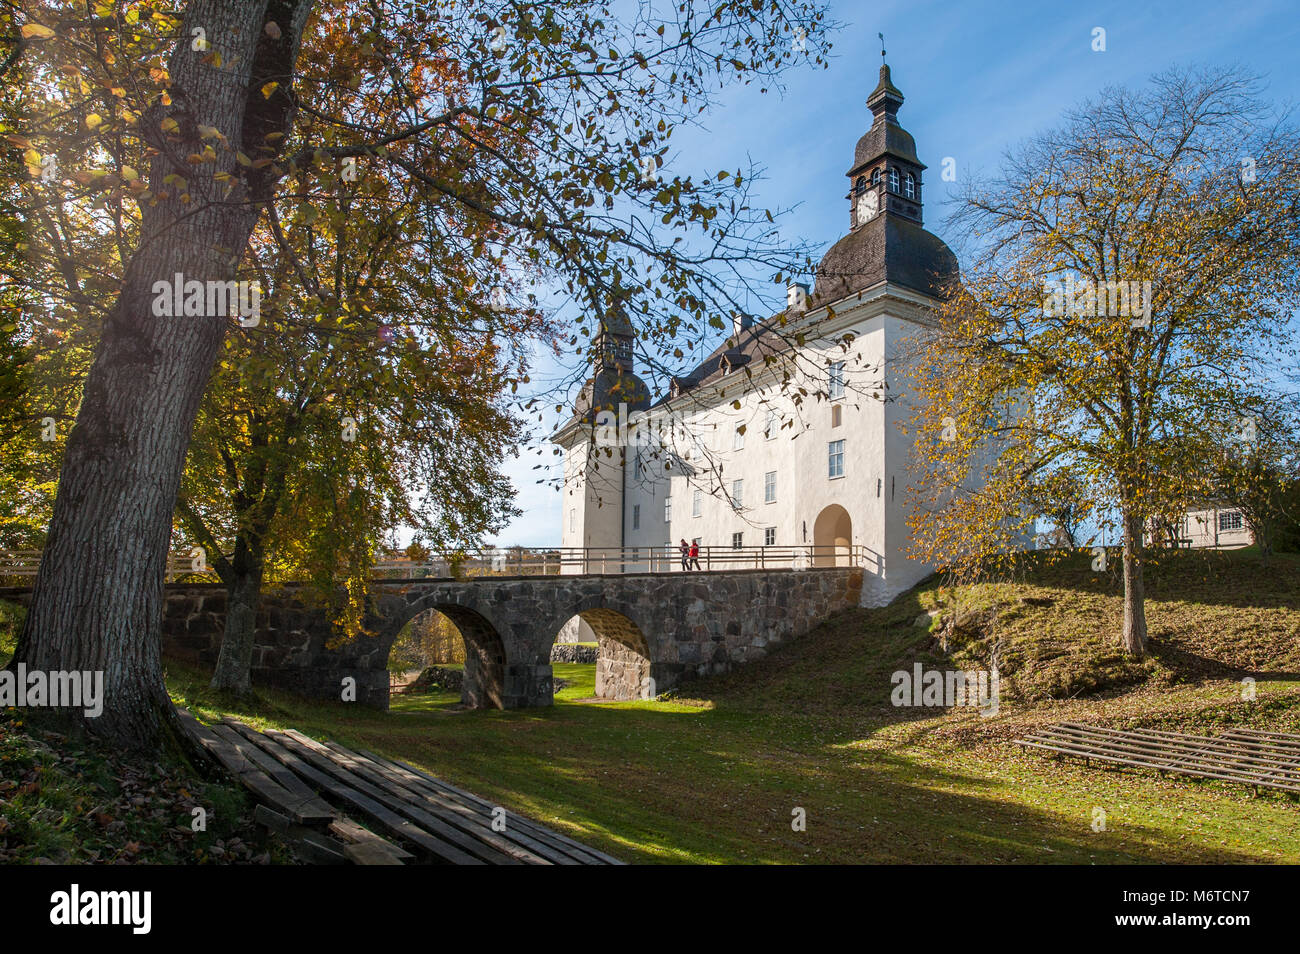 Ekenäs castle during fall in the countryside of Östergötland outside Linköping, Sweden. - Stock Image